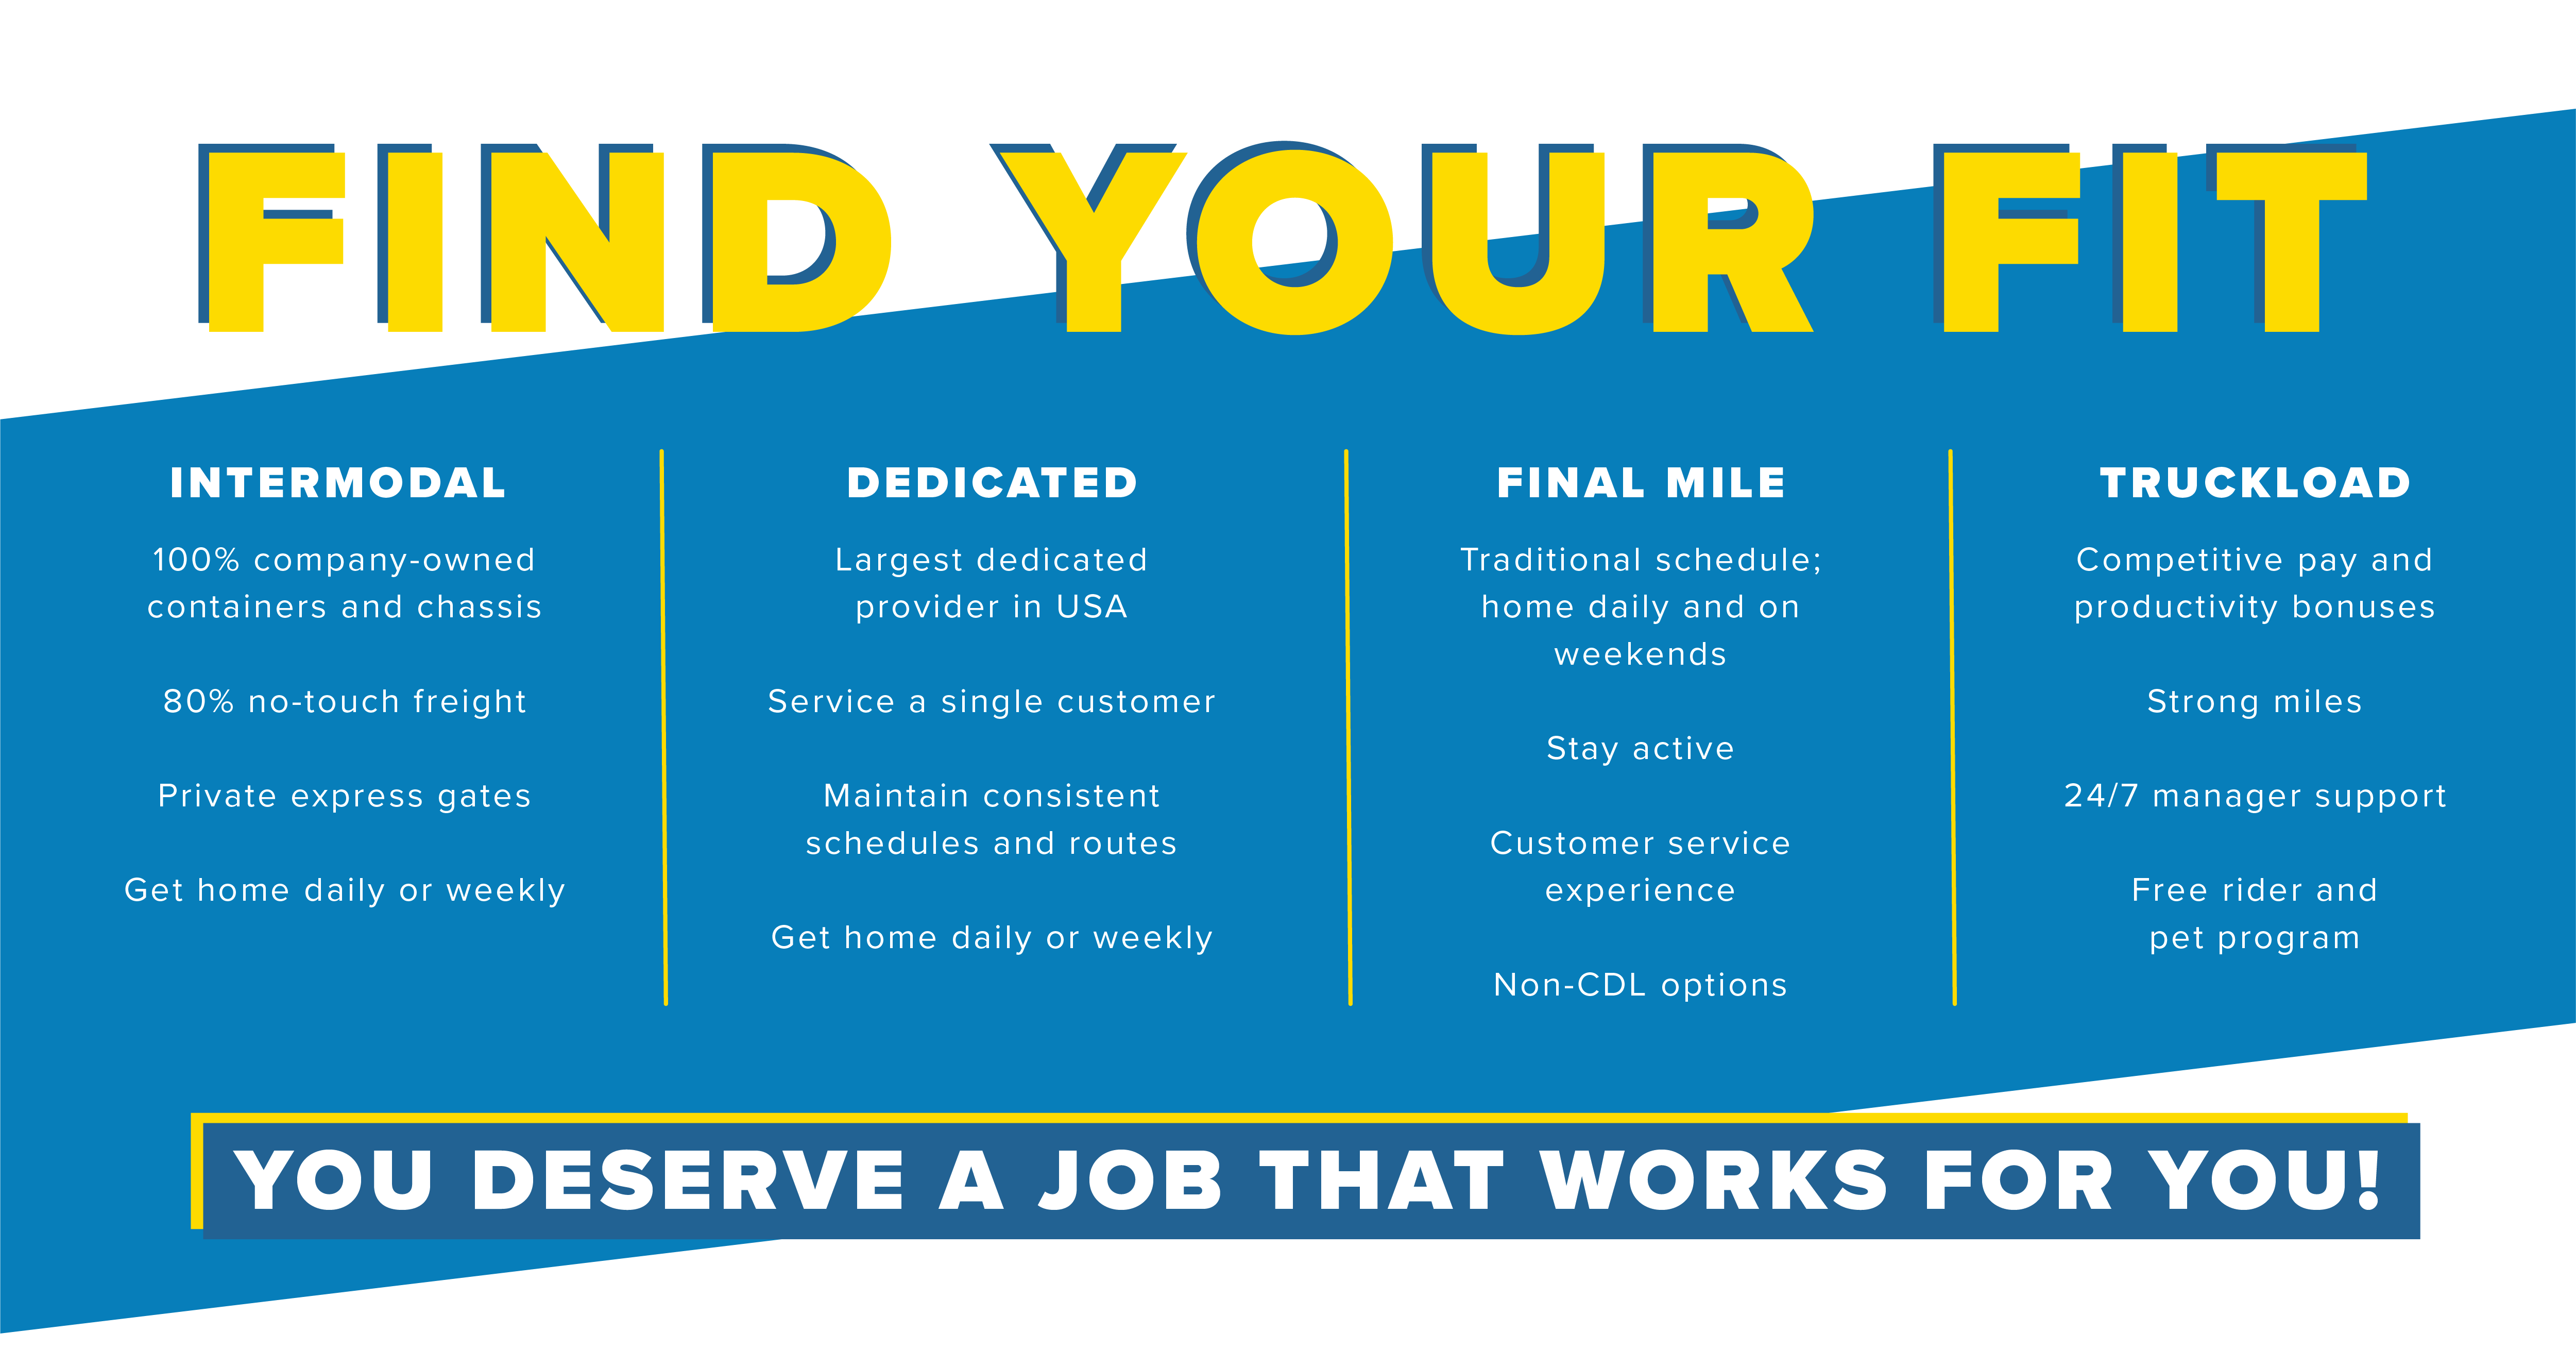 Find Your Fit, Intermodal, Dedicated, Final Mile, or Truckload. You deserve a job that works for you!